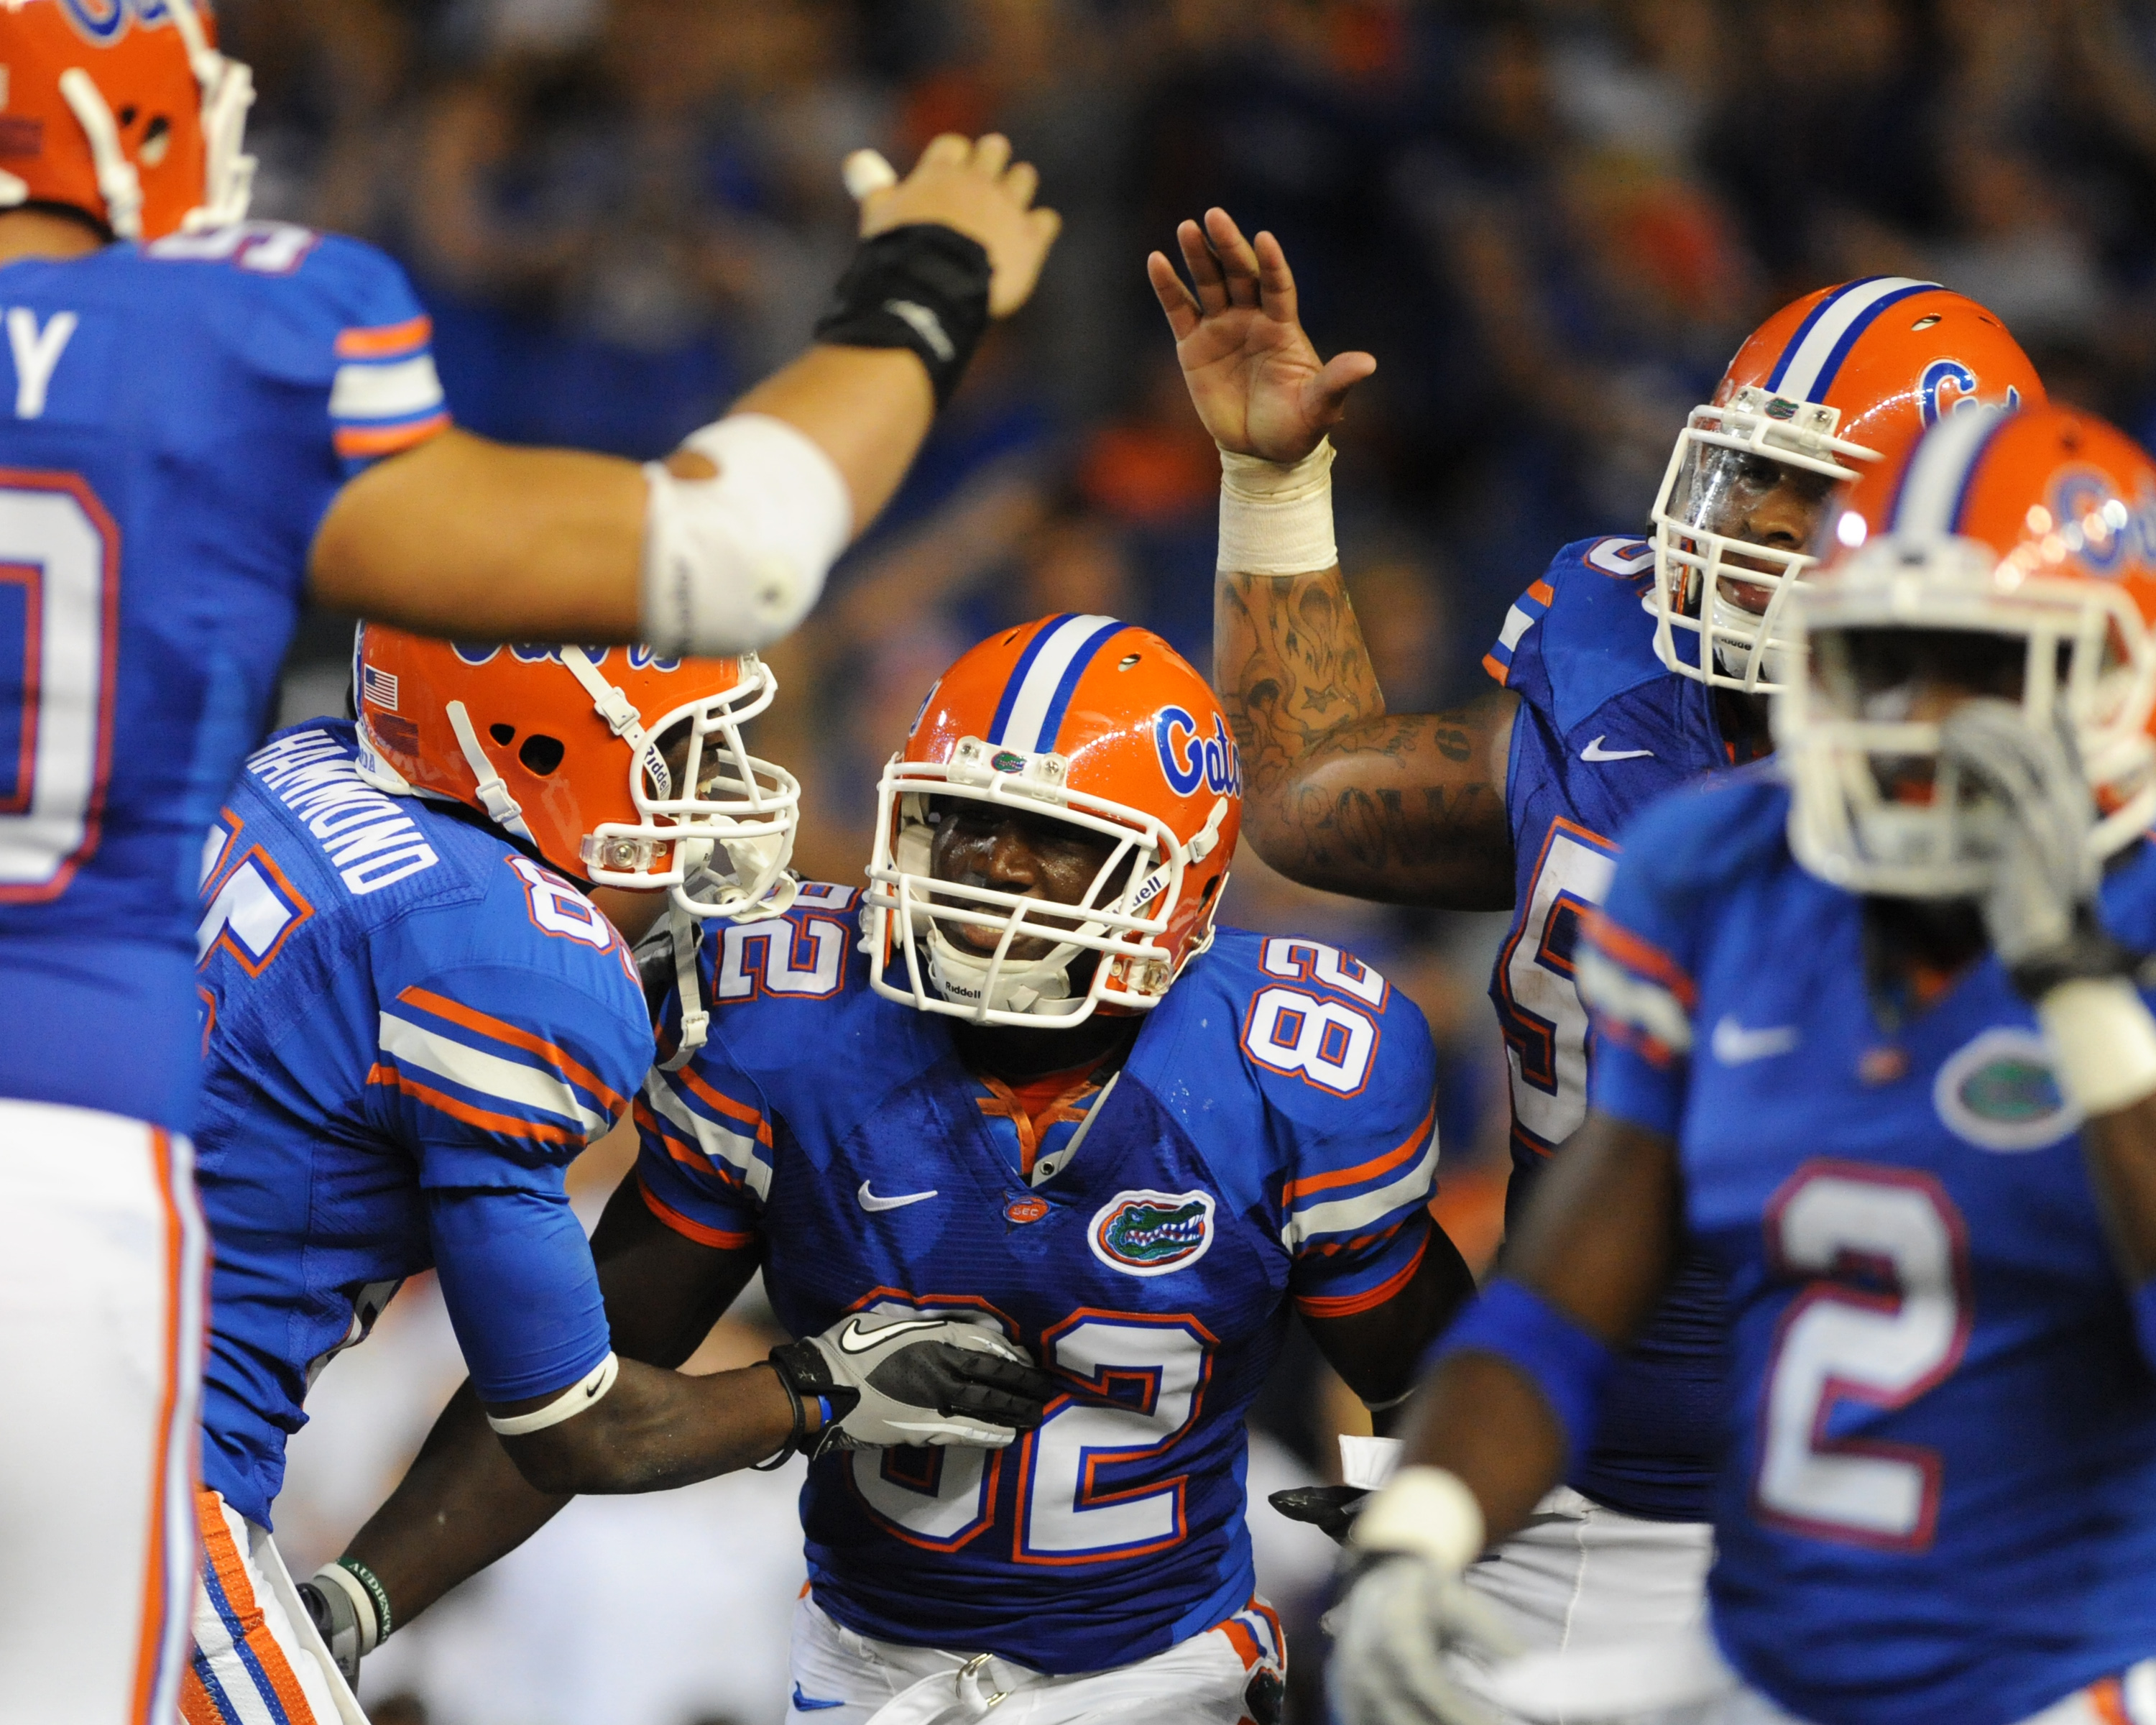 GAINESVILLE, FL - OCTOBER 16:  Wide receiver Omarius Hines #82 of the Florida Gators celebrates a touchdown catch against the Mississippi State Bulldogs  October 16, 2010 Ben Hill Griffin Stadium at Gainesville, Florida.  (Photo by Al Messerschmidt/Getty